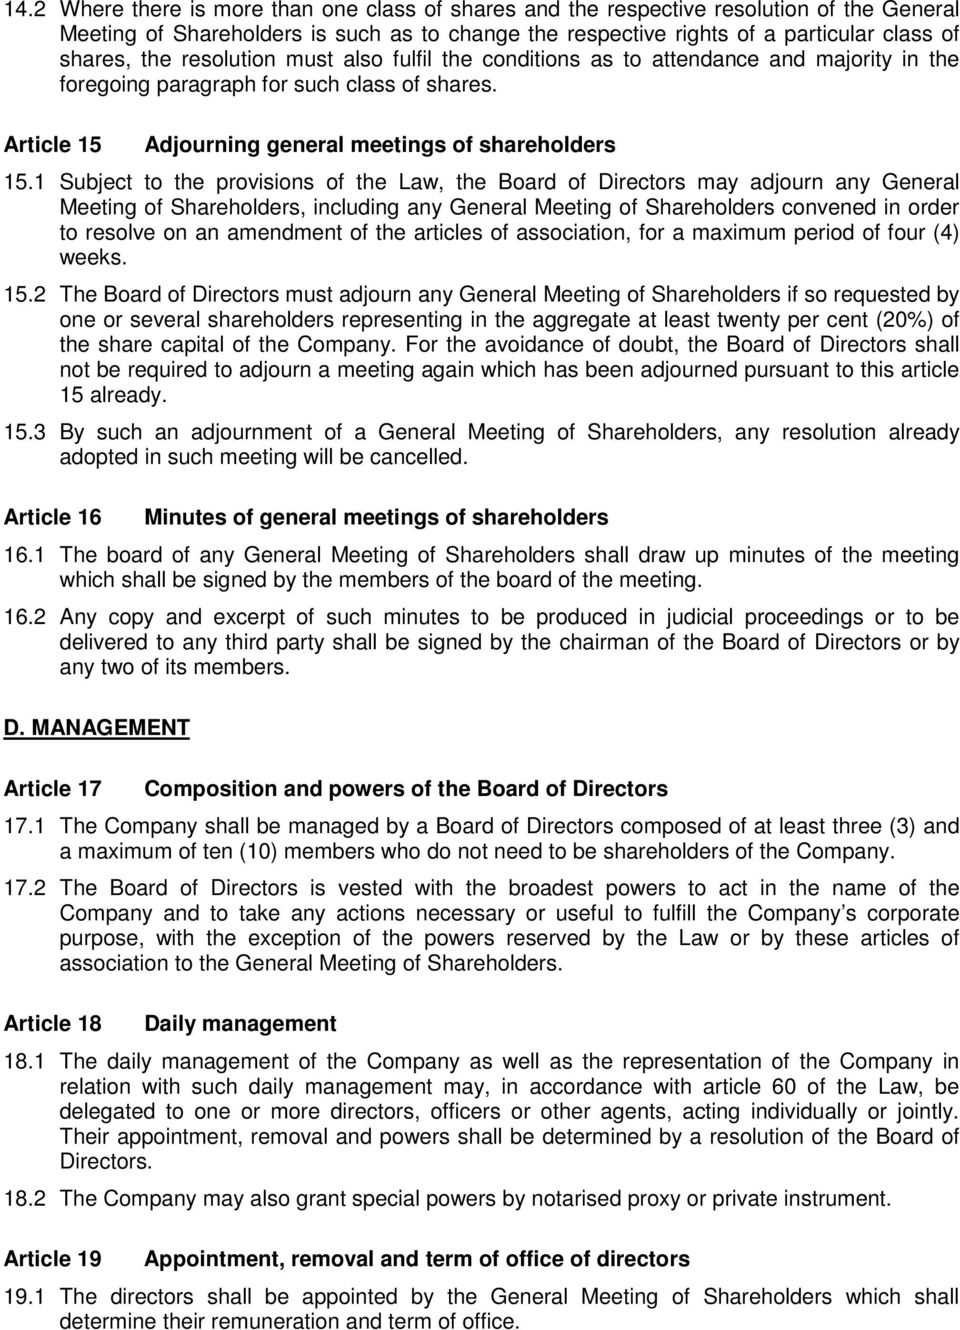 1 Subject to the provisions of the Law, the Board of Directors may adjourn any General Meeting of Shareholders, including any General Meeting of Shareholders convened in order to resolve on an